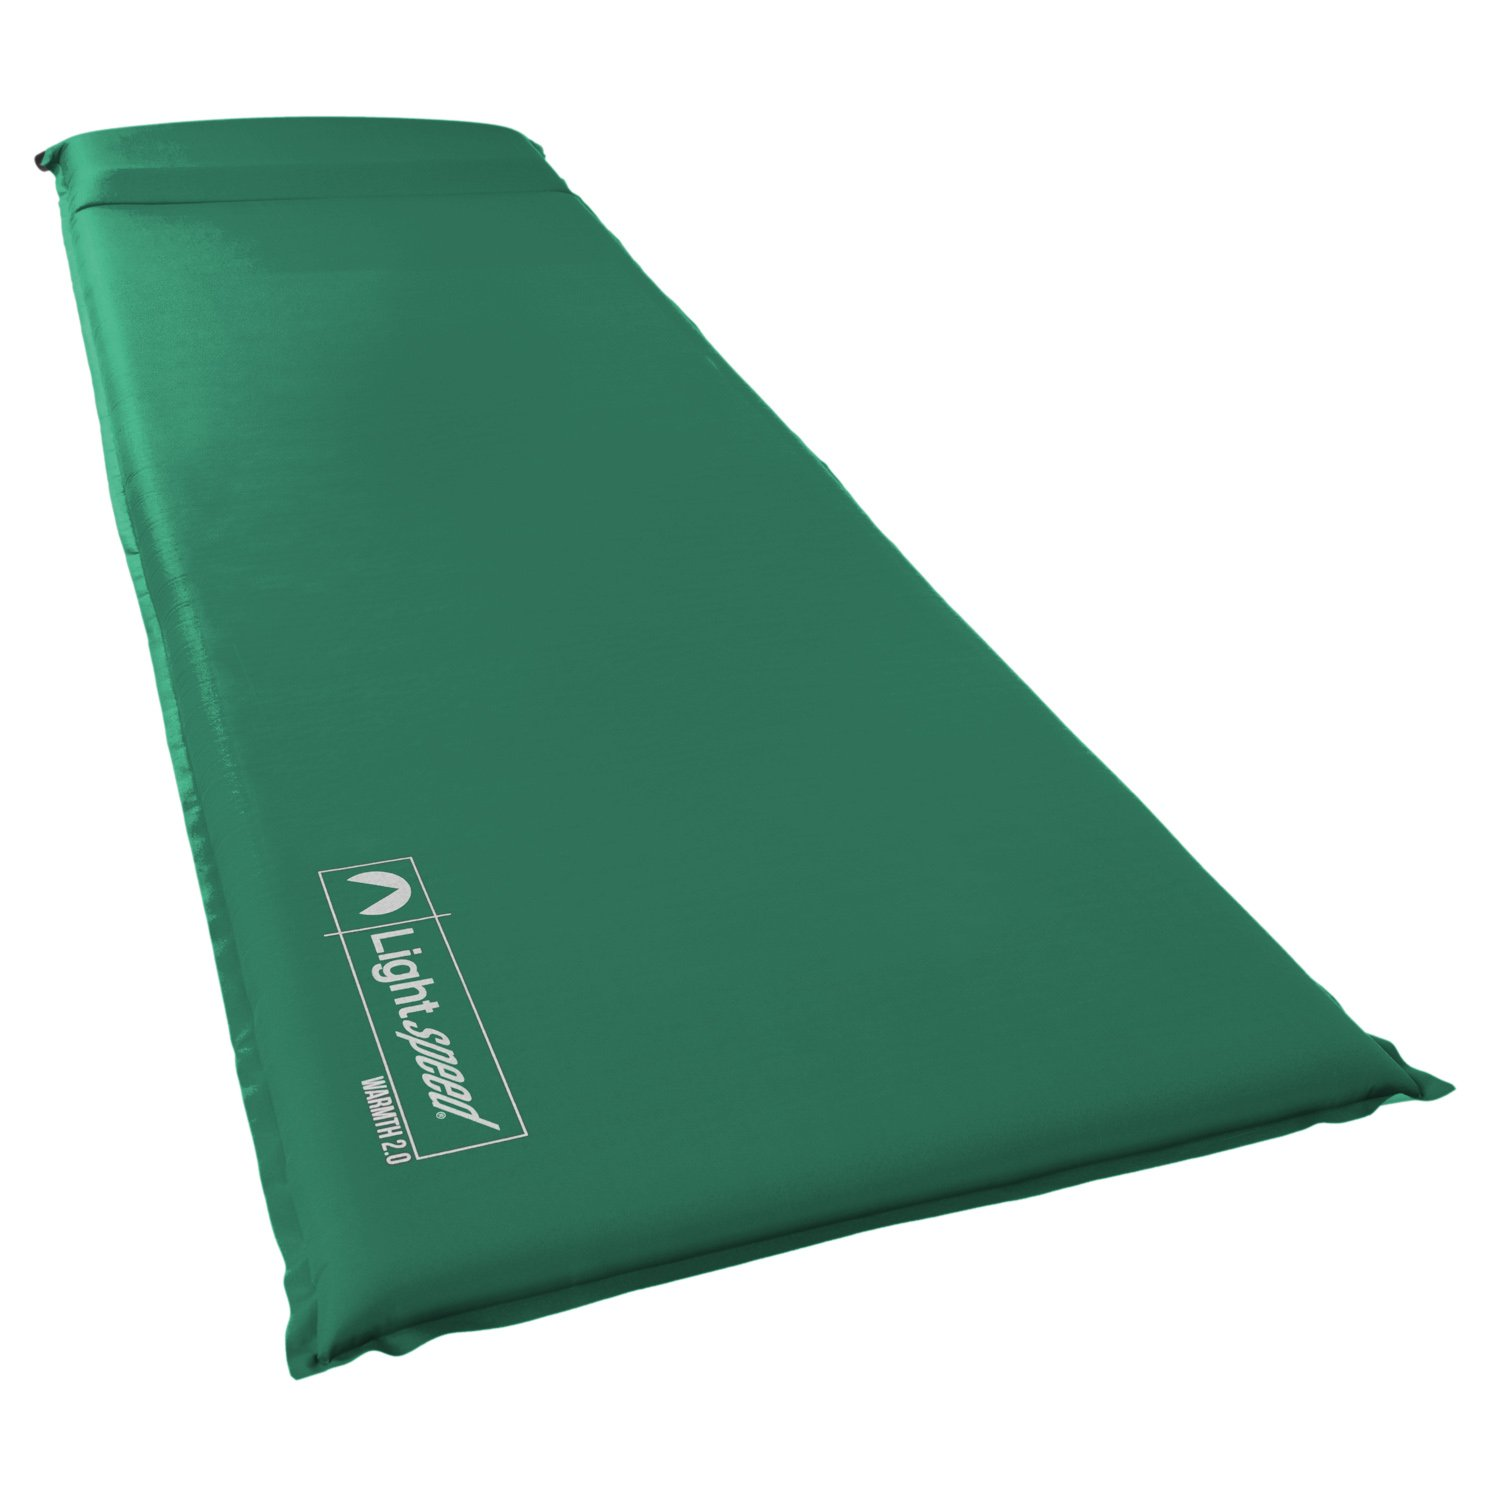 Lightspeed Outdoors Warmth Series Self Inflating Sleep Camp Pad (1.5) by Lightspeed Outdoors